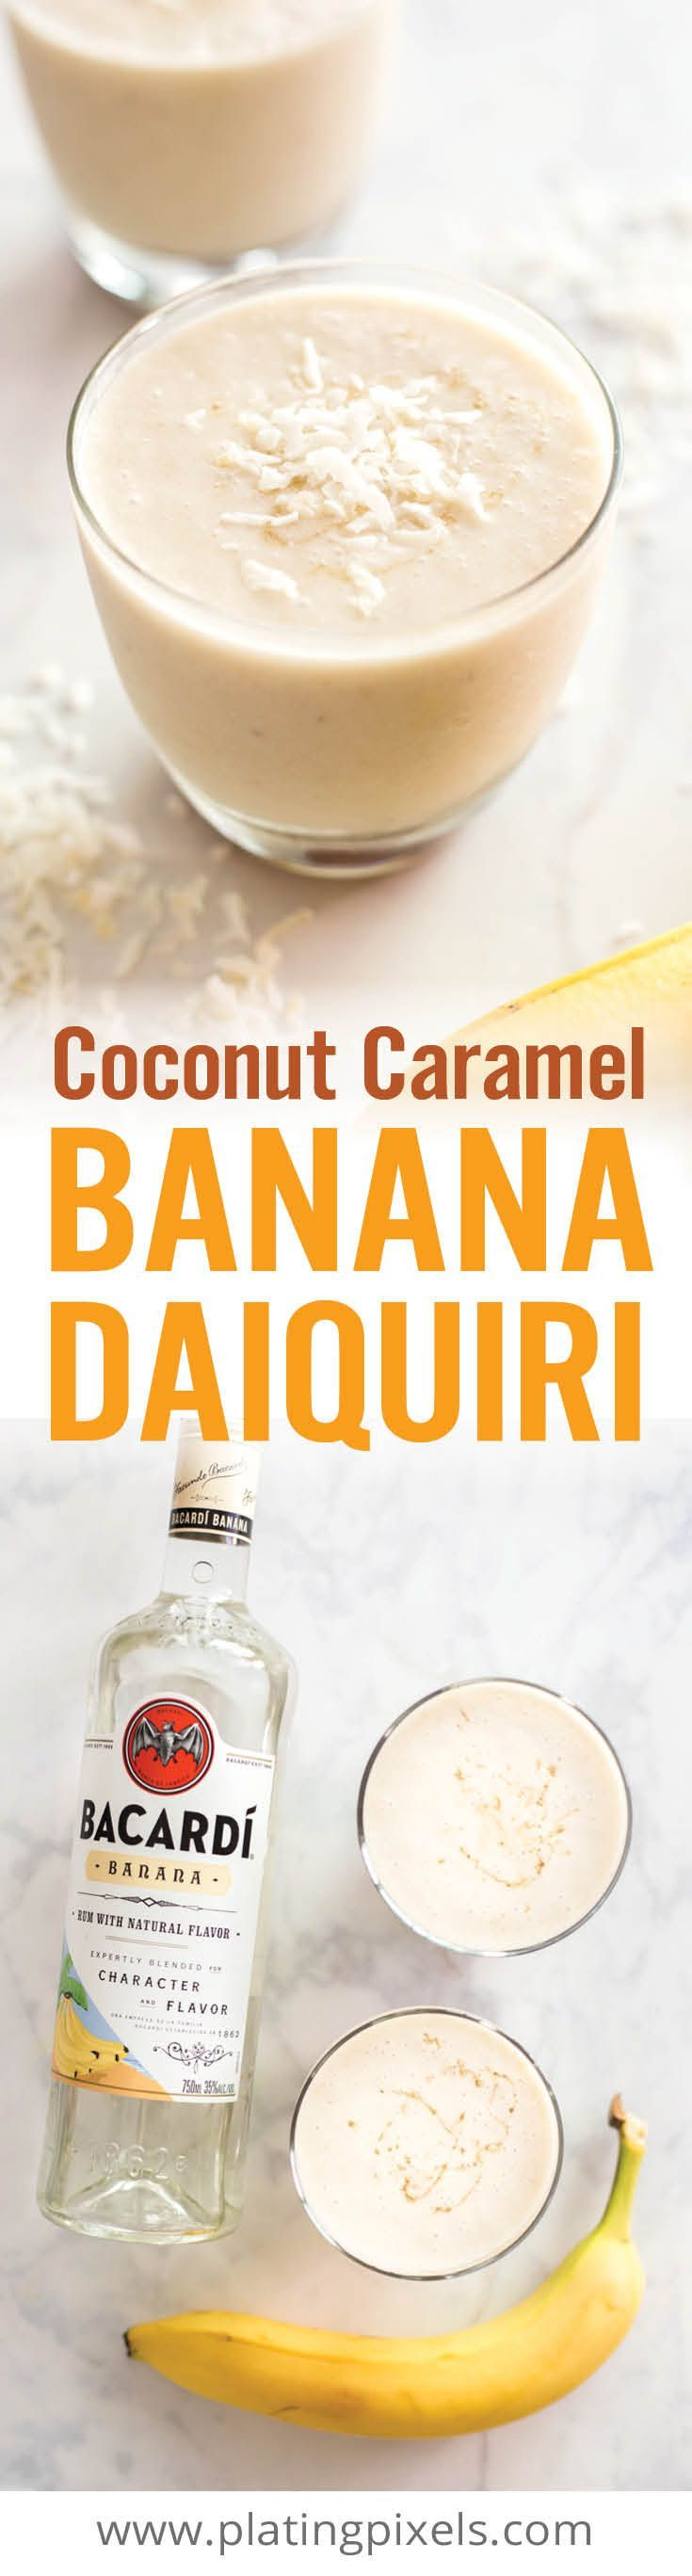 Coconut and Caramel Banana Daiquiri is an easy summer cocktail.